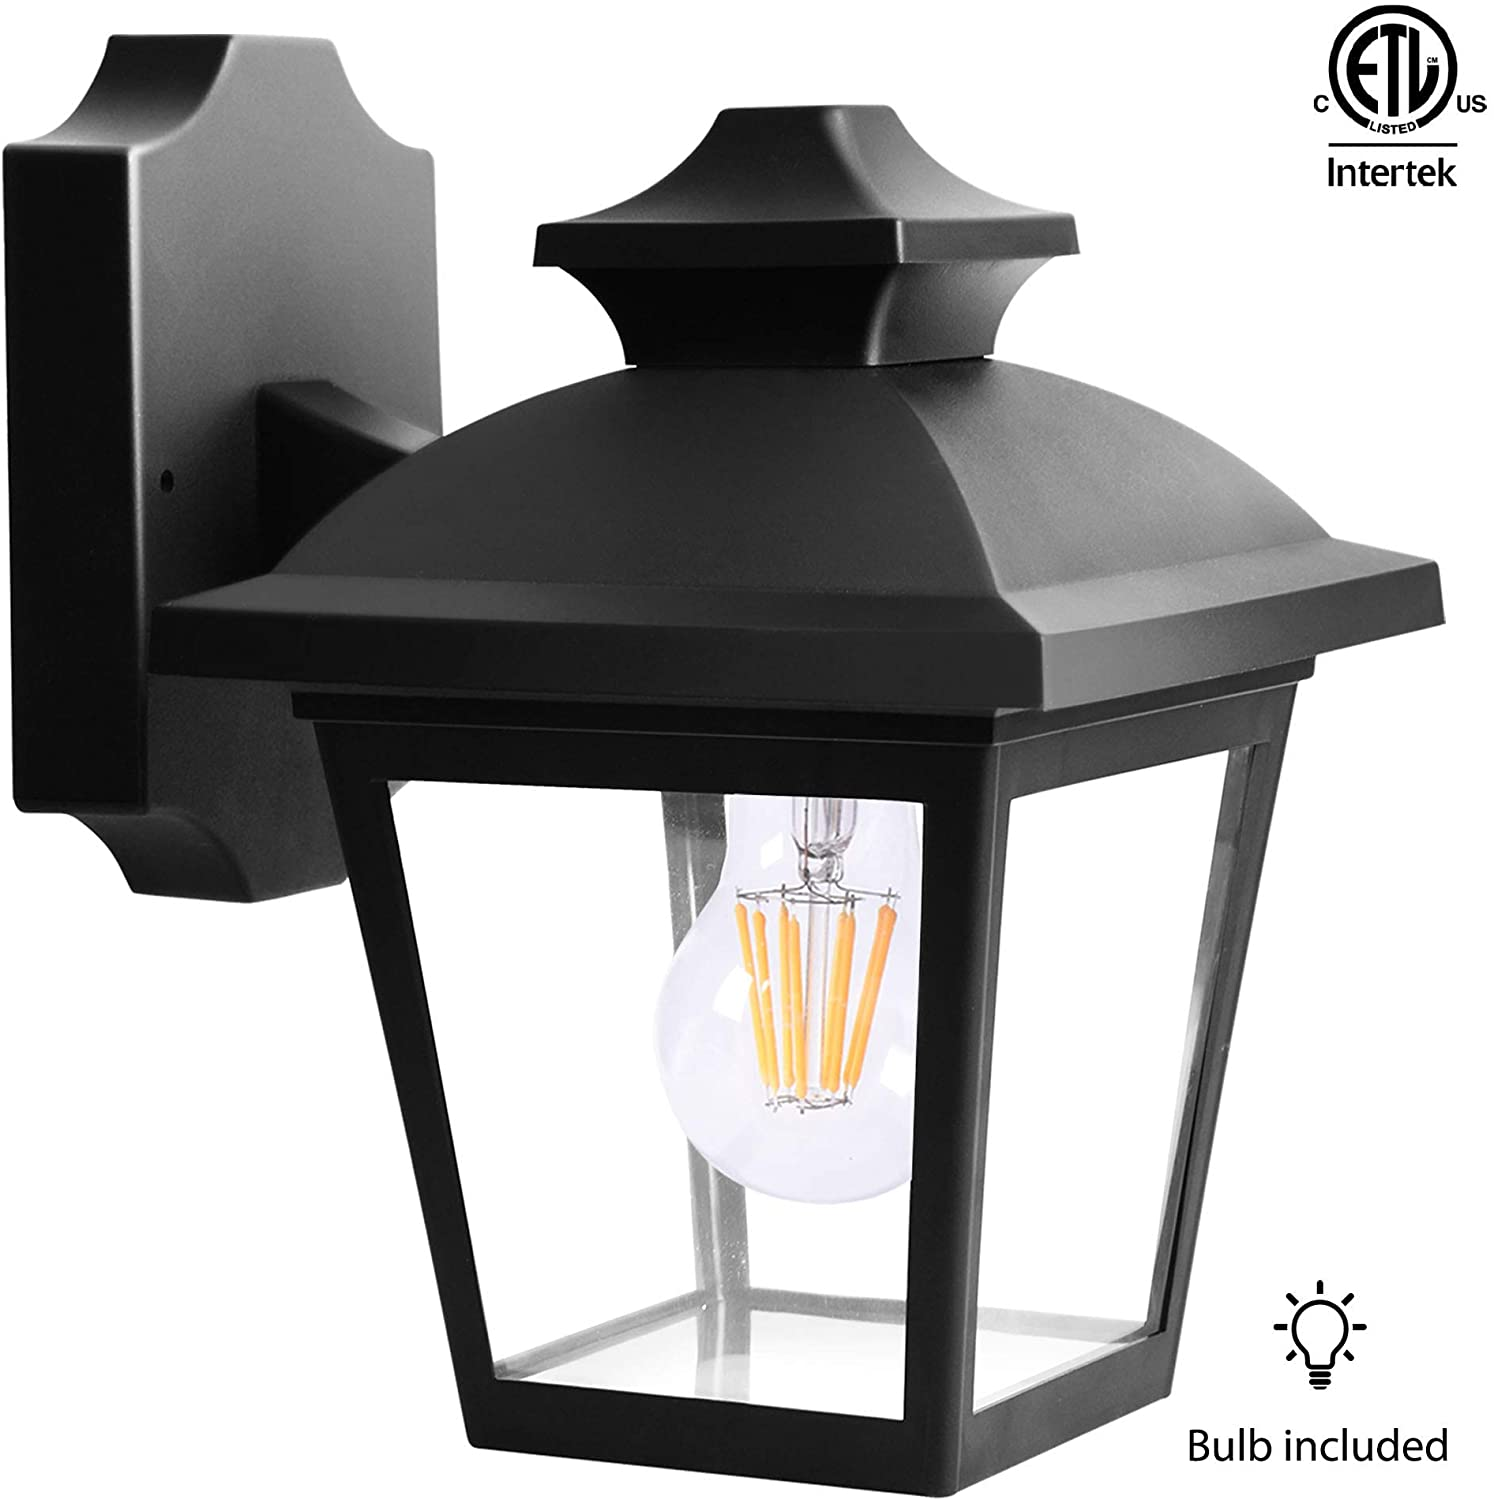 FUDESY 9 1/2 High Transitional Outdoor Wall Lanterns, 3000K Dimmable LED Edison FilamentBulb Included, Anti-Corrosion Plastic Materials, Black, P746-E26